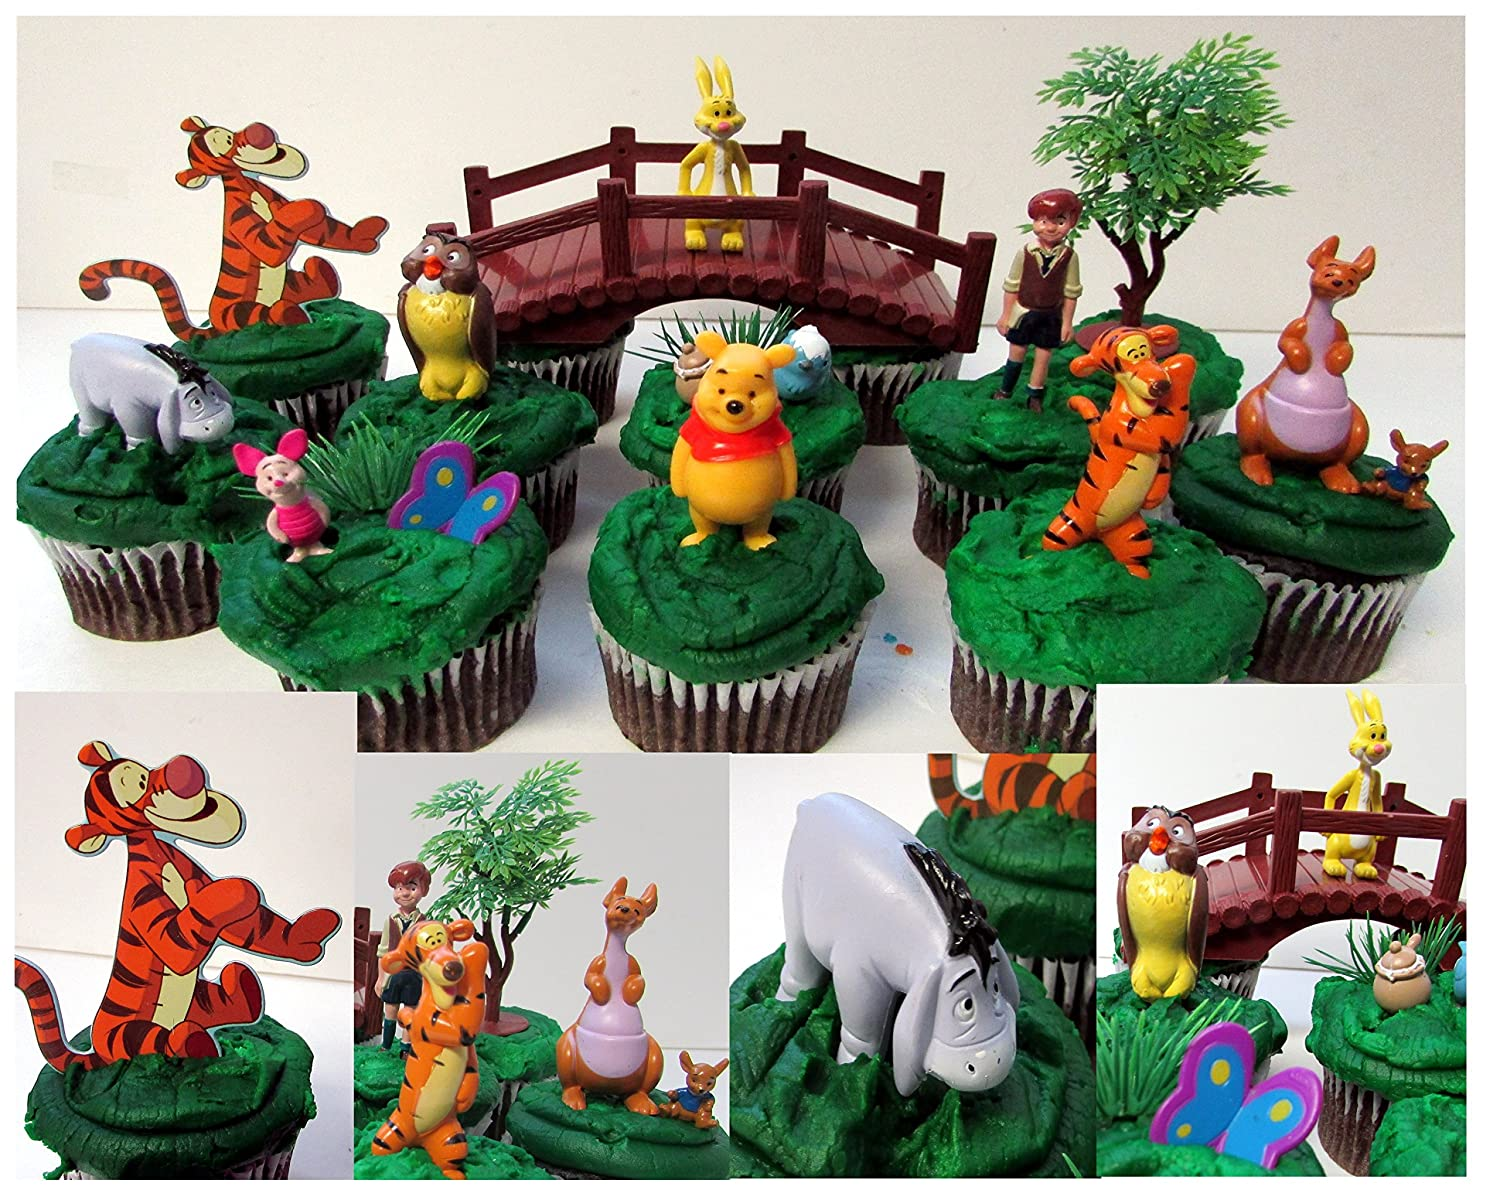 Winnie the Pooh Cupcake Topper Set Featuring Piglet, Tigger, Eeyore, and Twelve Other Characters